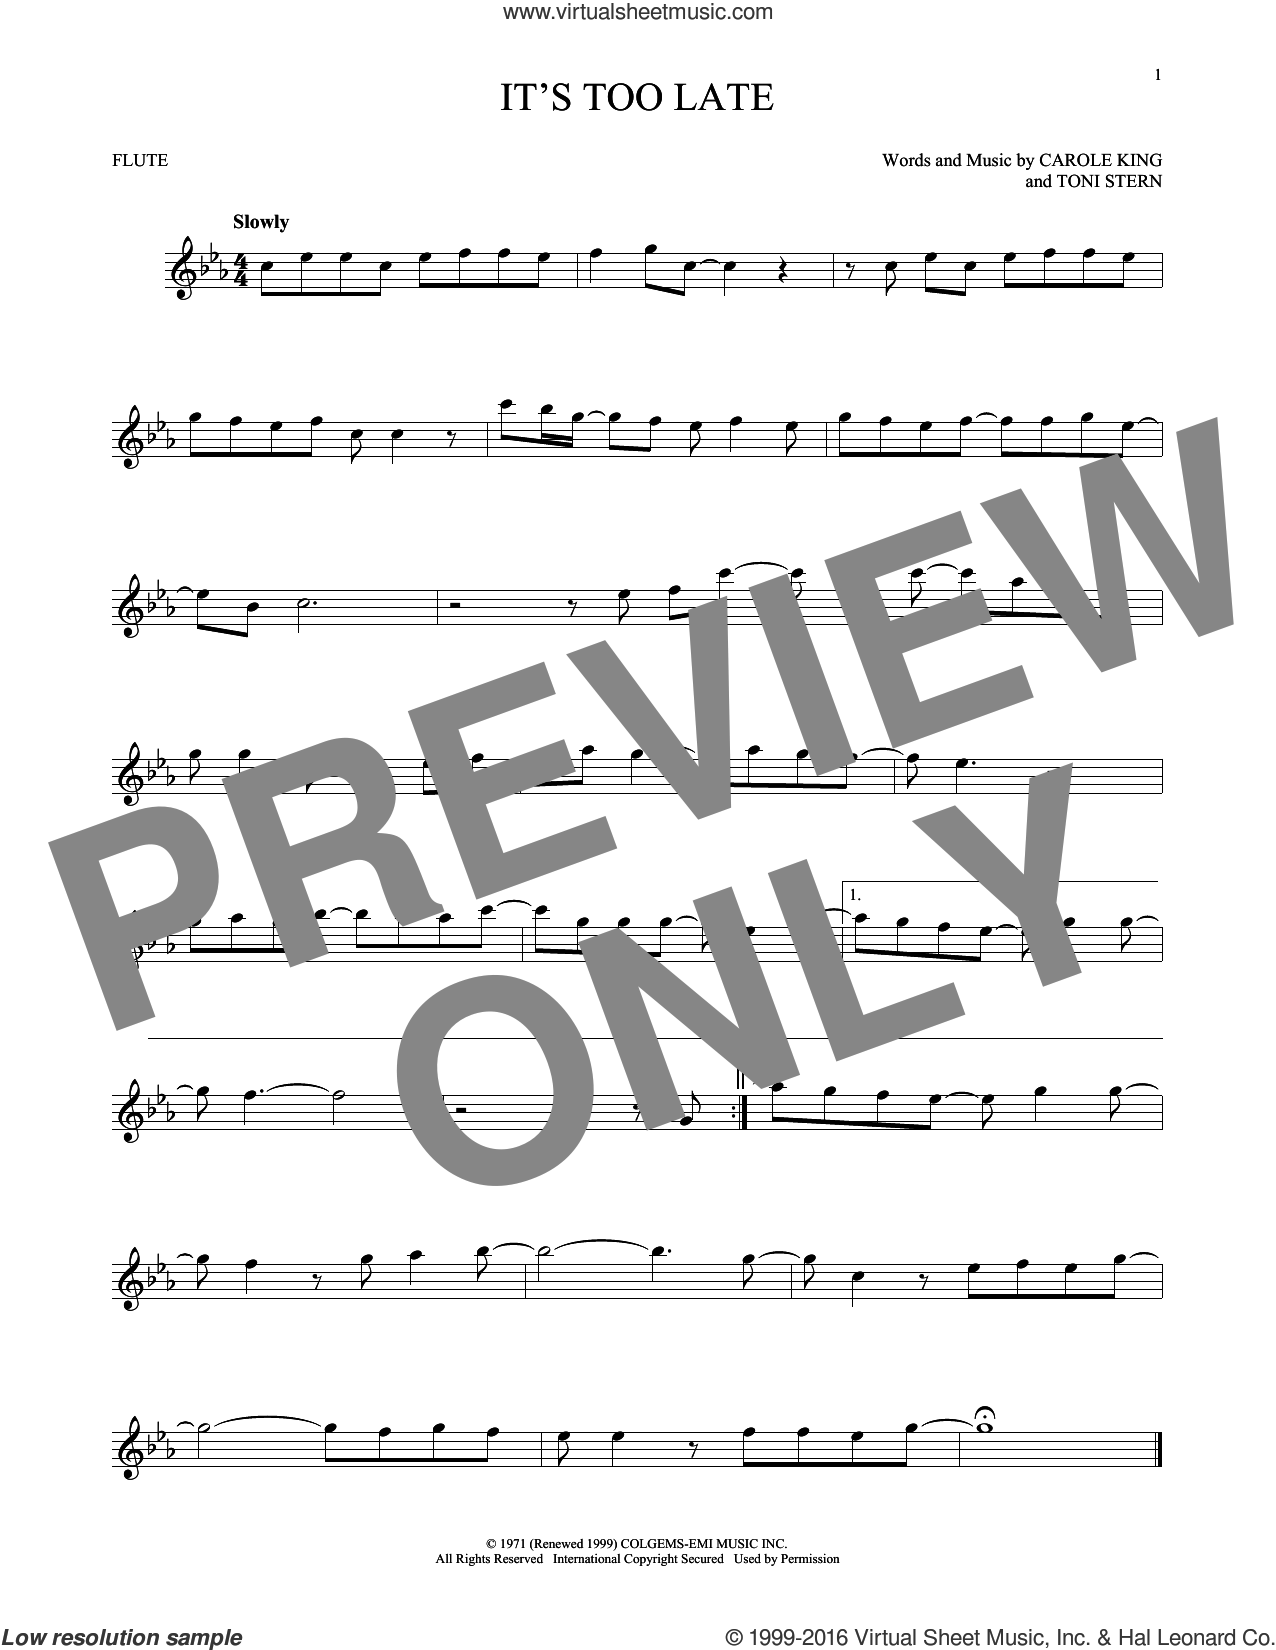 It's Too Late sheet music for flute solo by Carole King, Gloria Estefan and Toni Stern, intermediate skill level